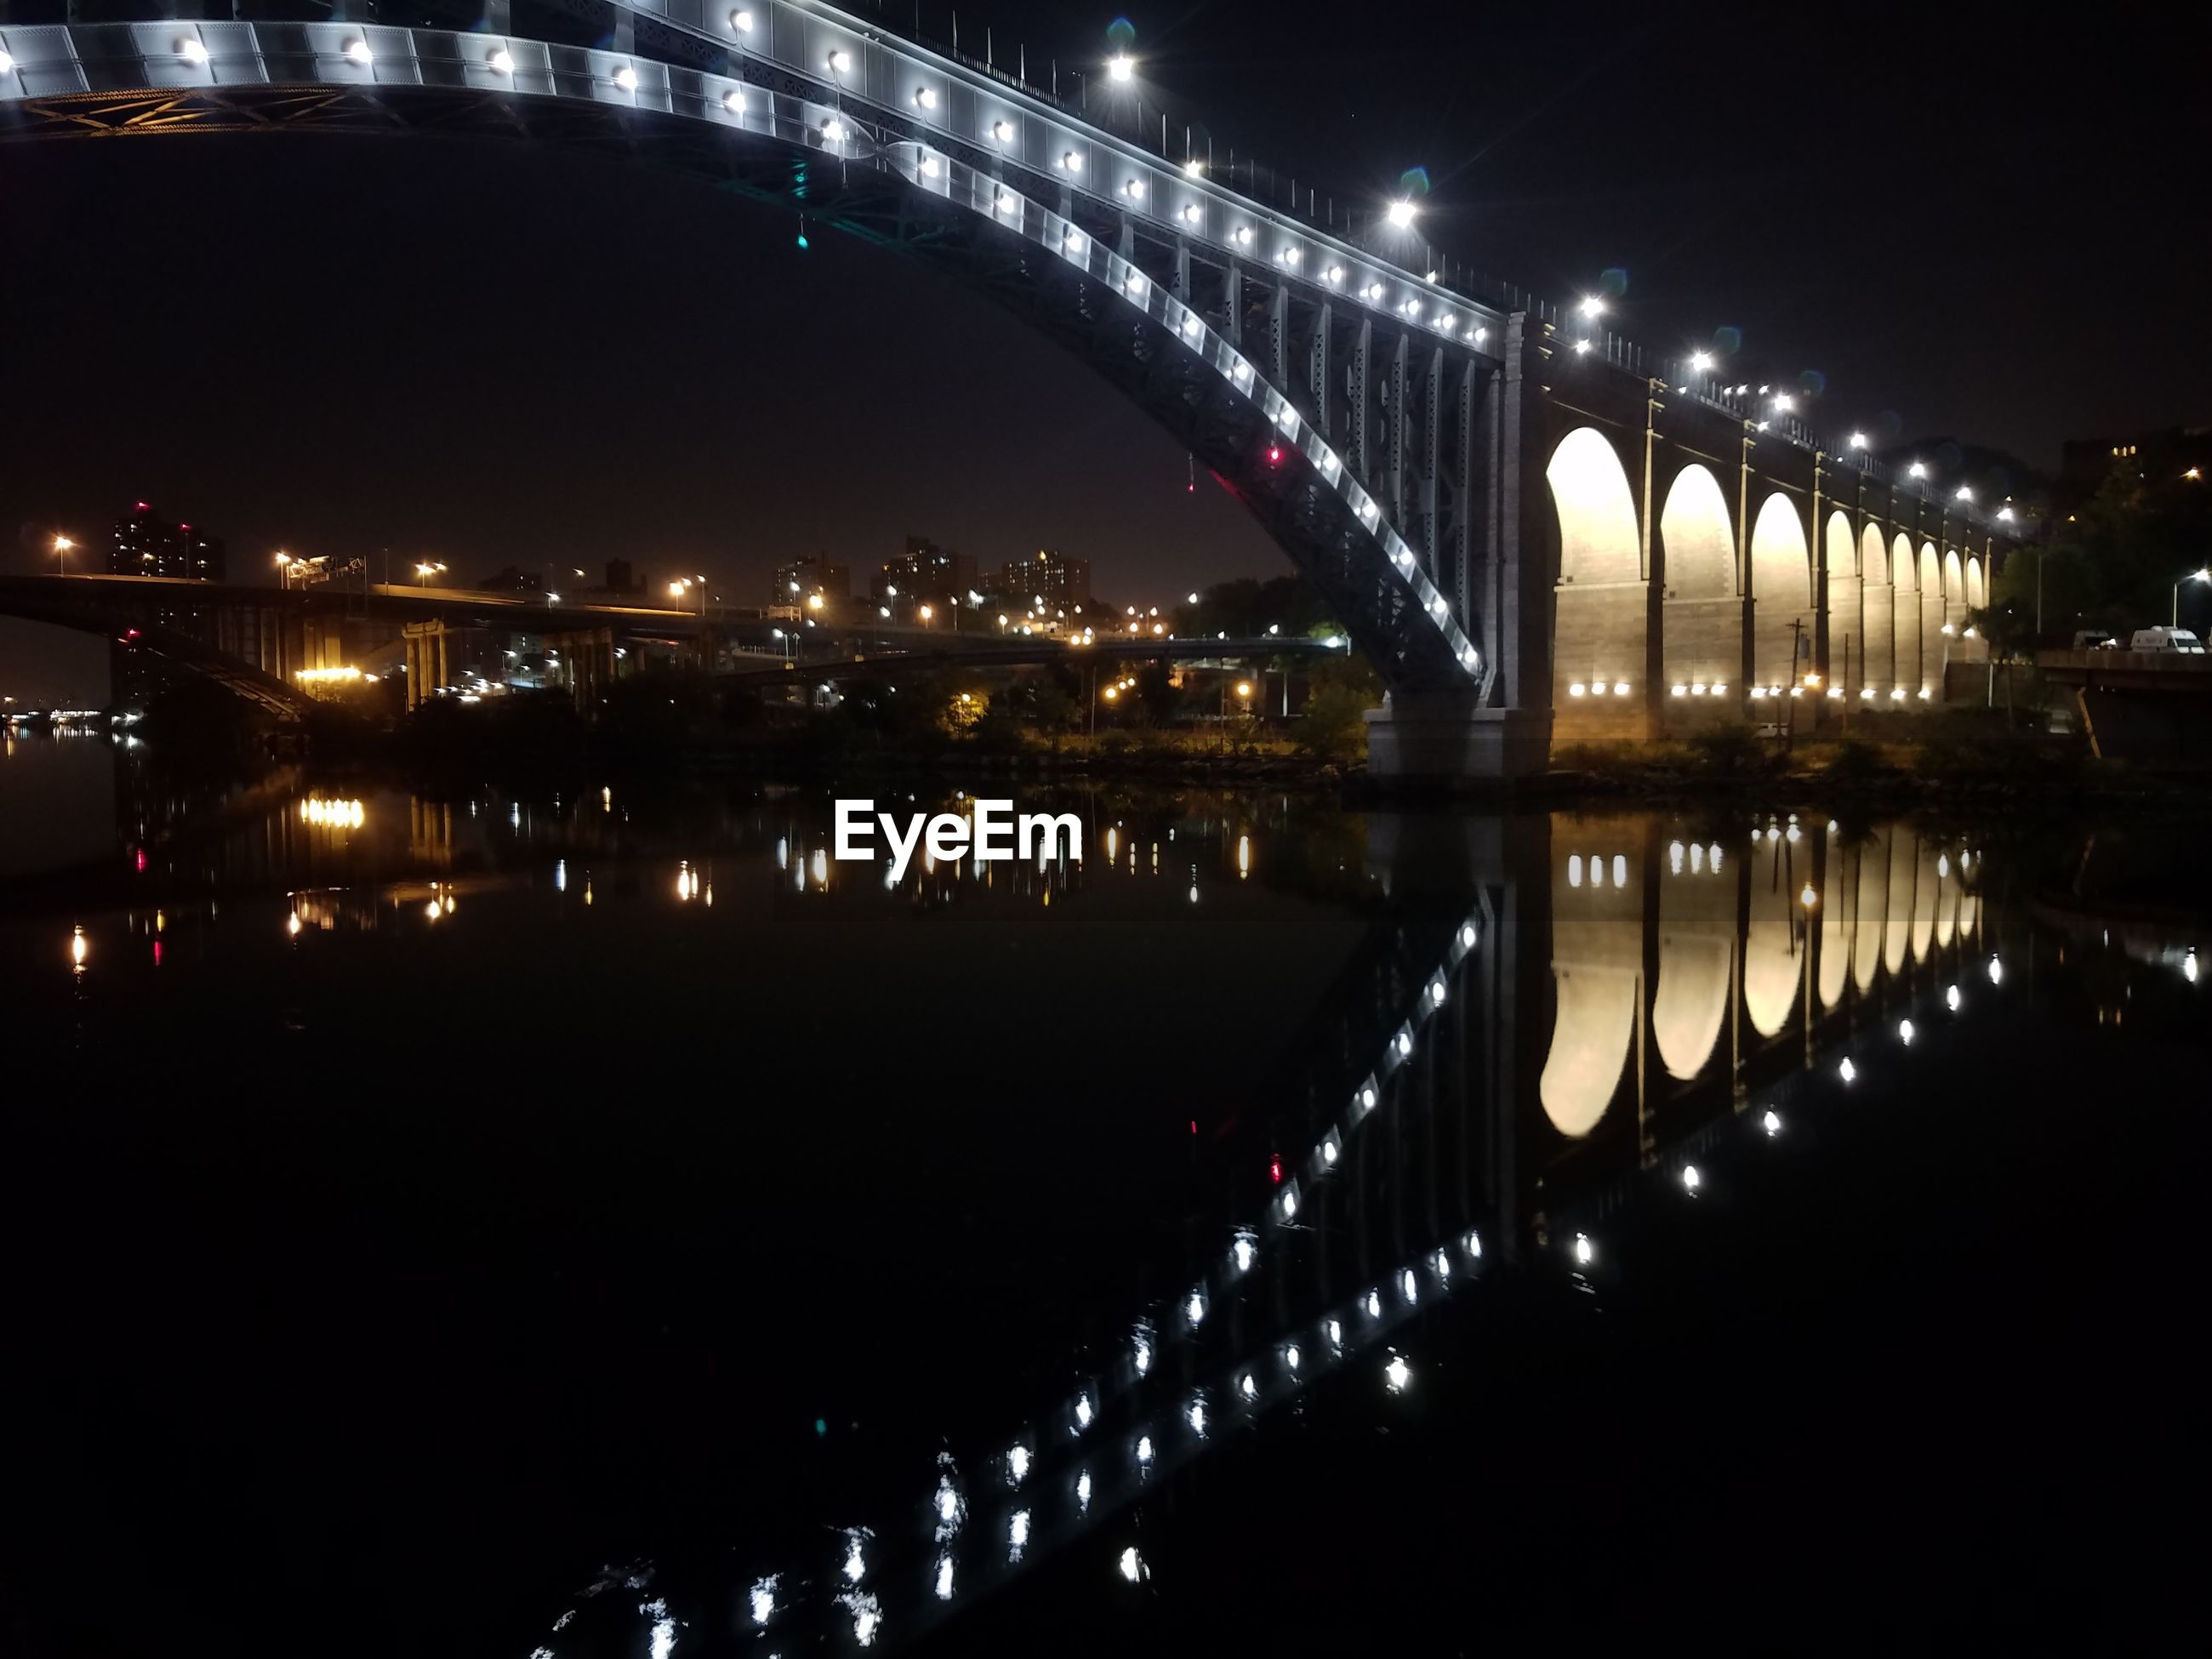 connection, architecture, bridge - man made structure, built structure, illuminated, night, water, engineering, reflection, river, transportation, bridge, building exterior, sky, waterfront, outdoors, scenics, tranquility, suspension bridge, water surface, tourism, no people